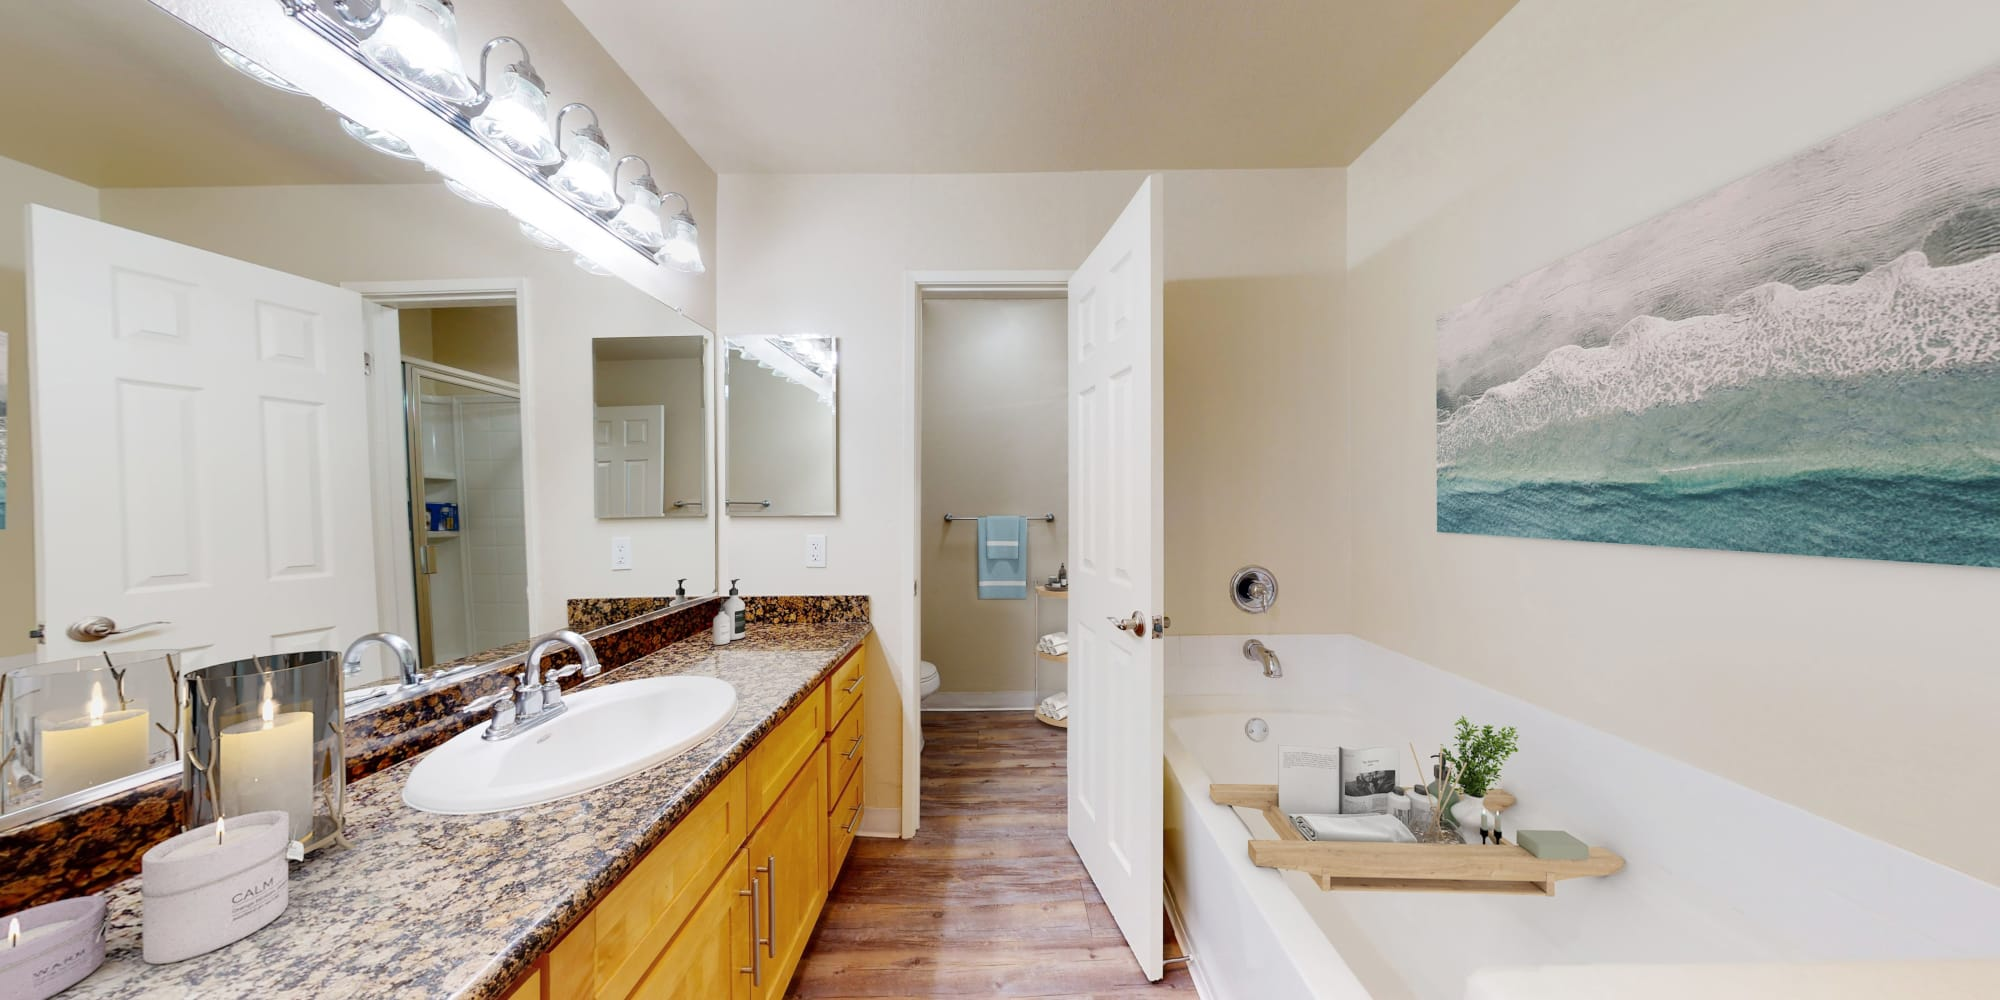 Bathroom with large vanity and soak tub in a one-bedroom apartment at Waters Edge at Marina Harbor in Marina del Rey, California